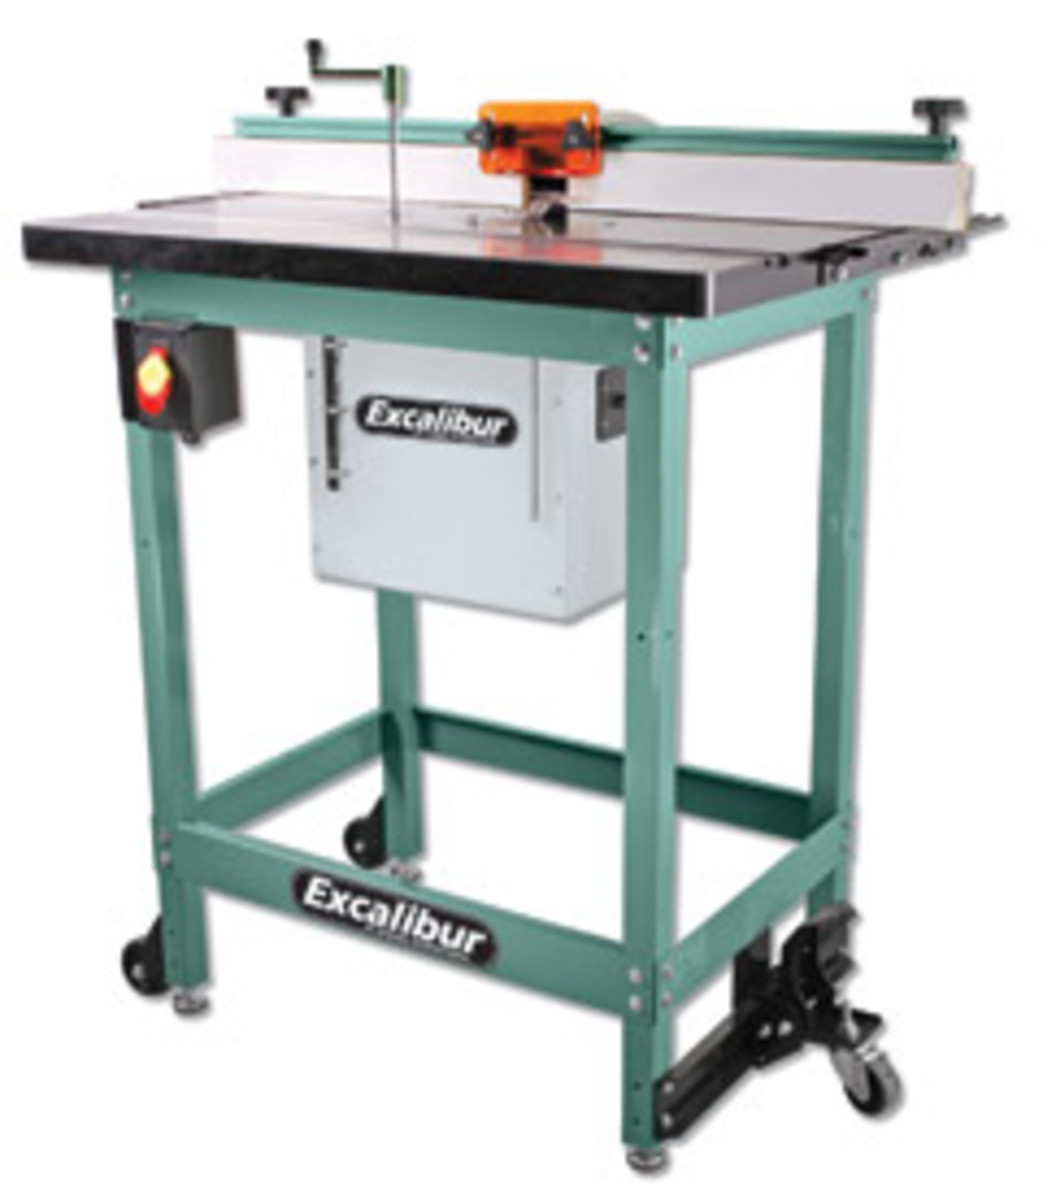 General International's new floor cast-iron router table.